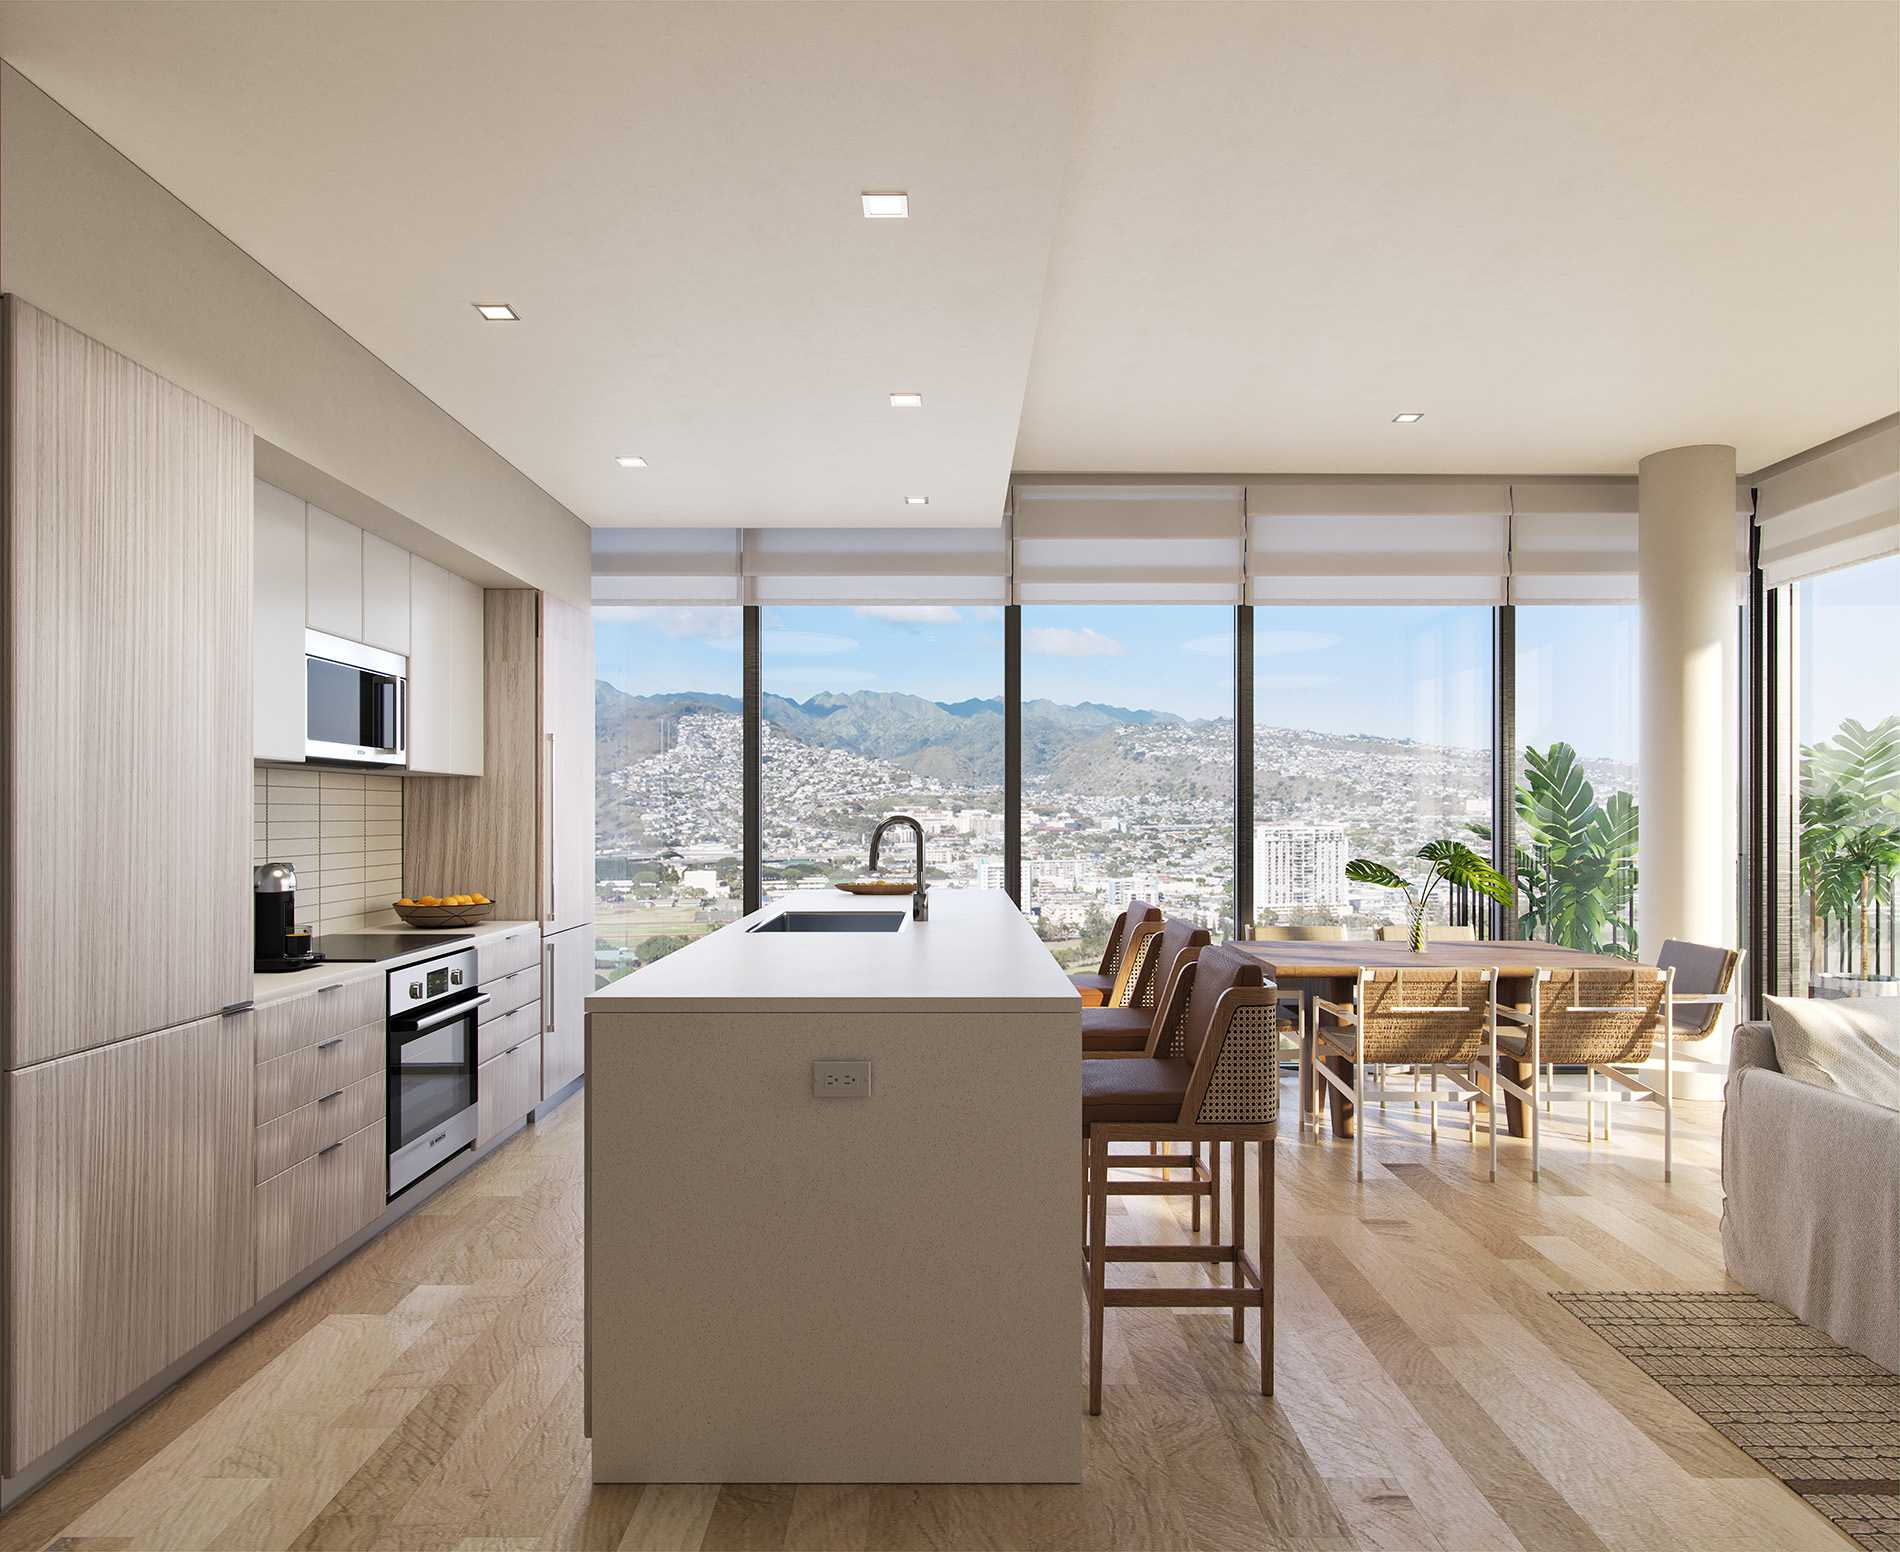 Interior of an apartment with view of the ocean